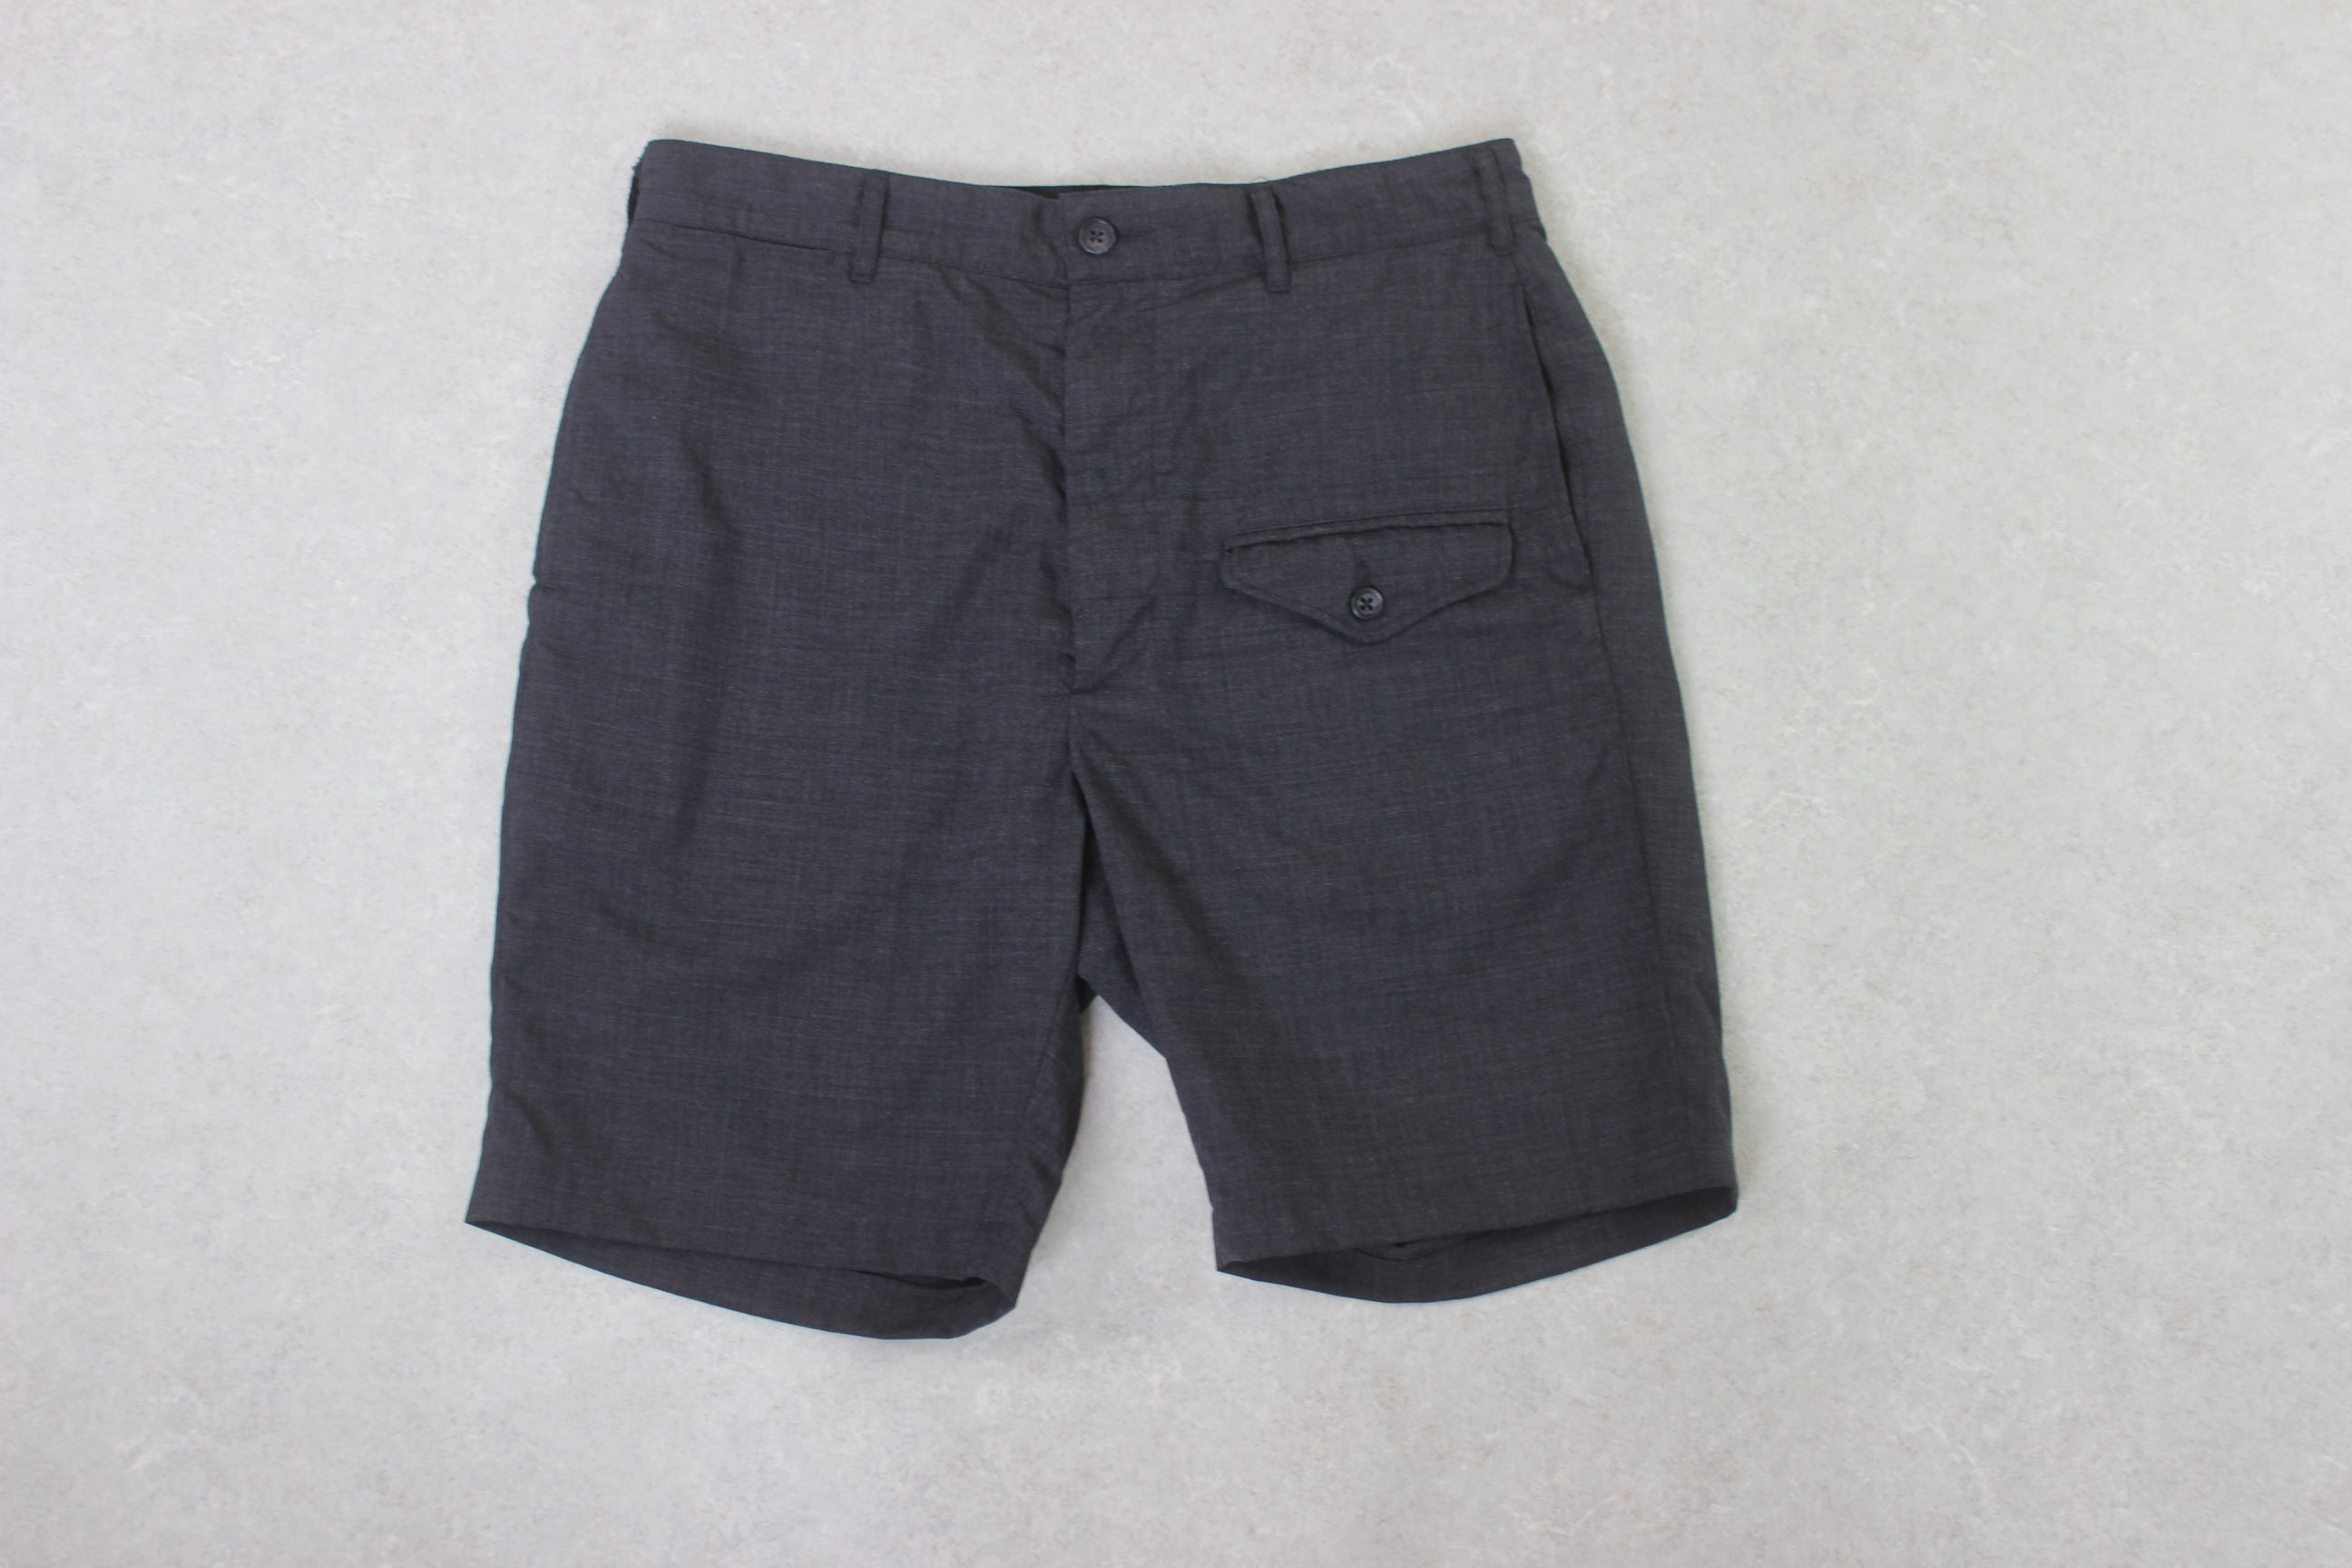 Engineered Garments - Wool Blend Ghurka Shorts - Grey - Small/32